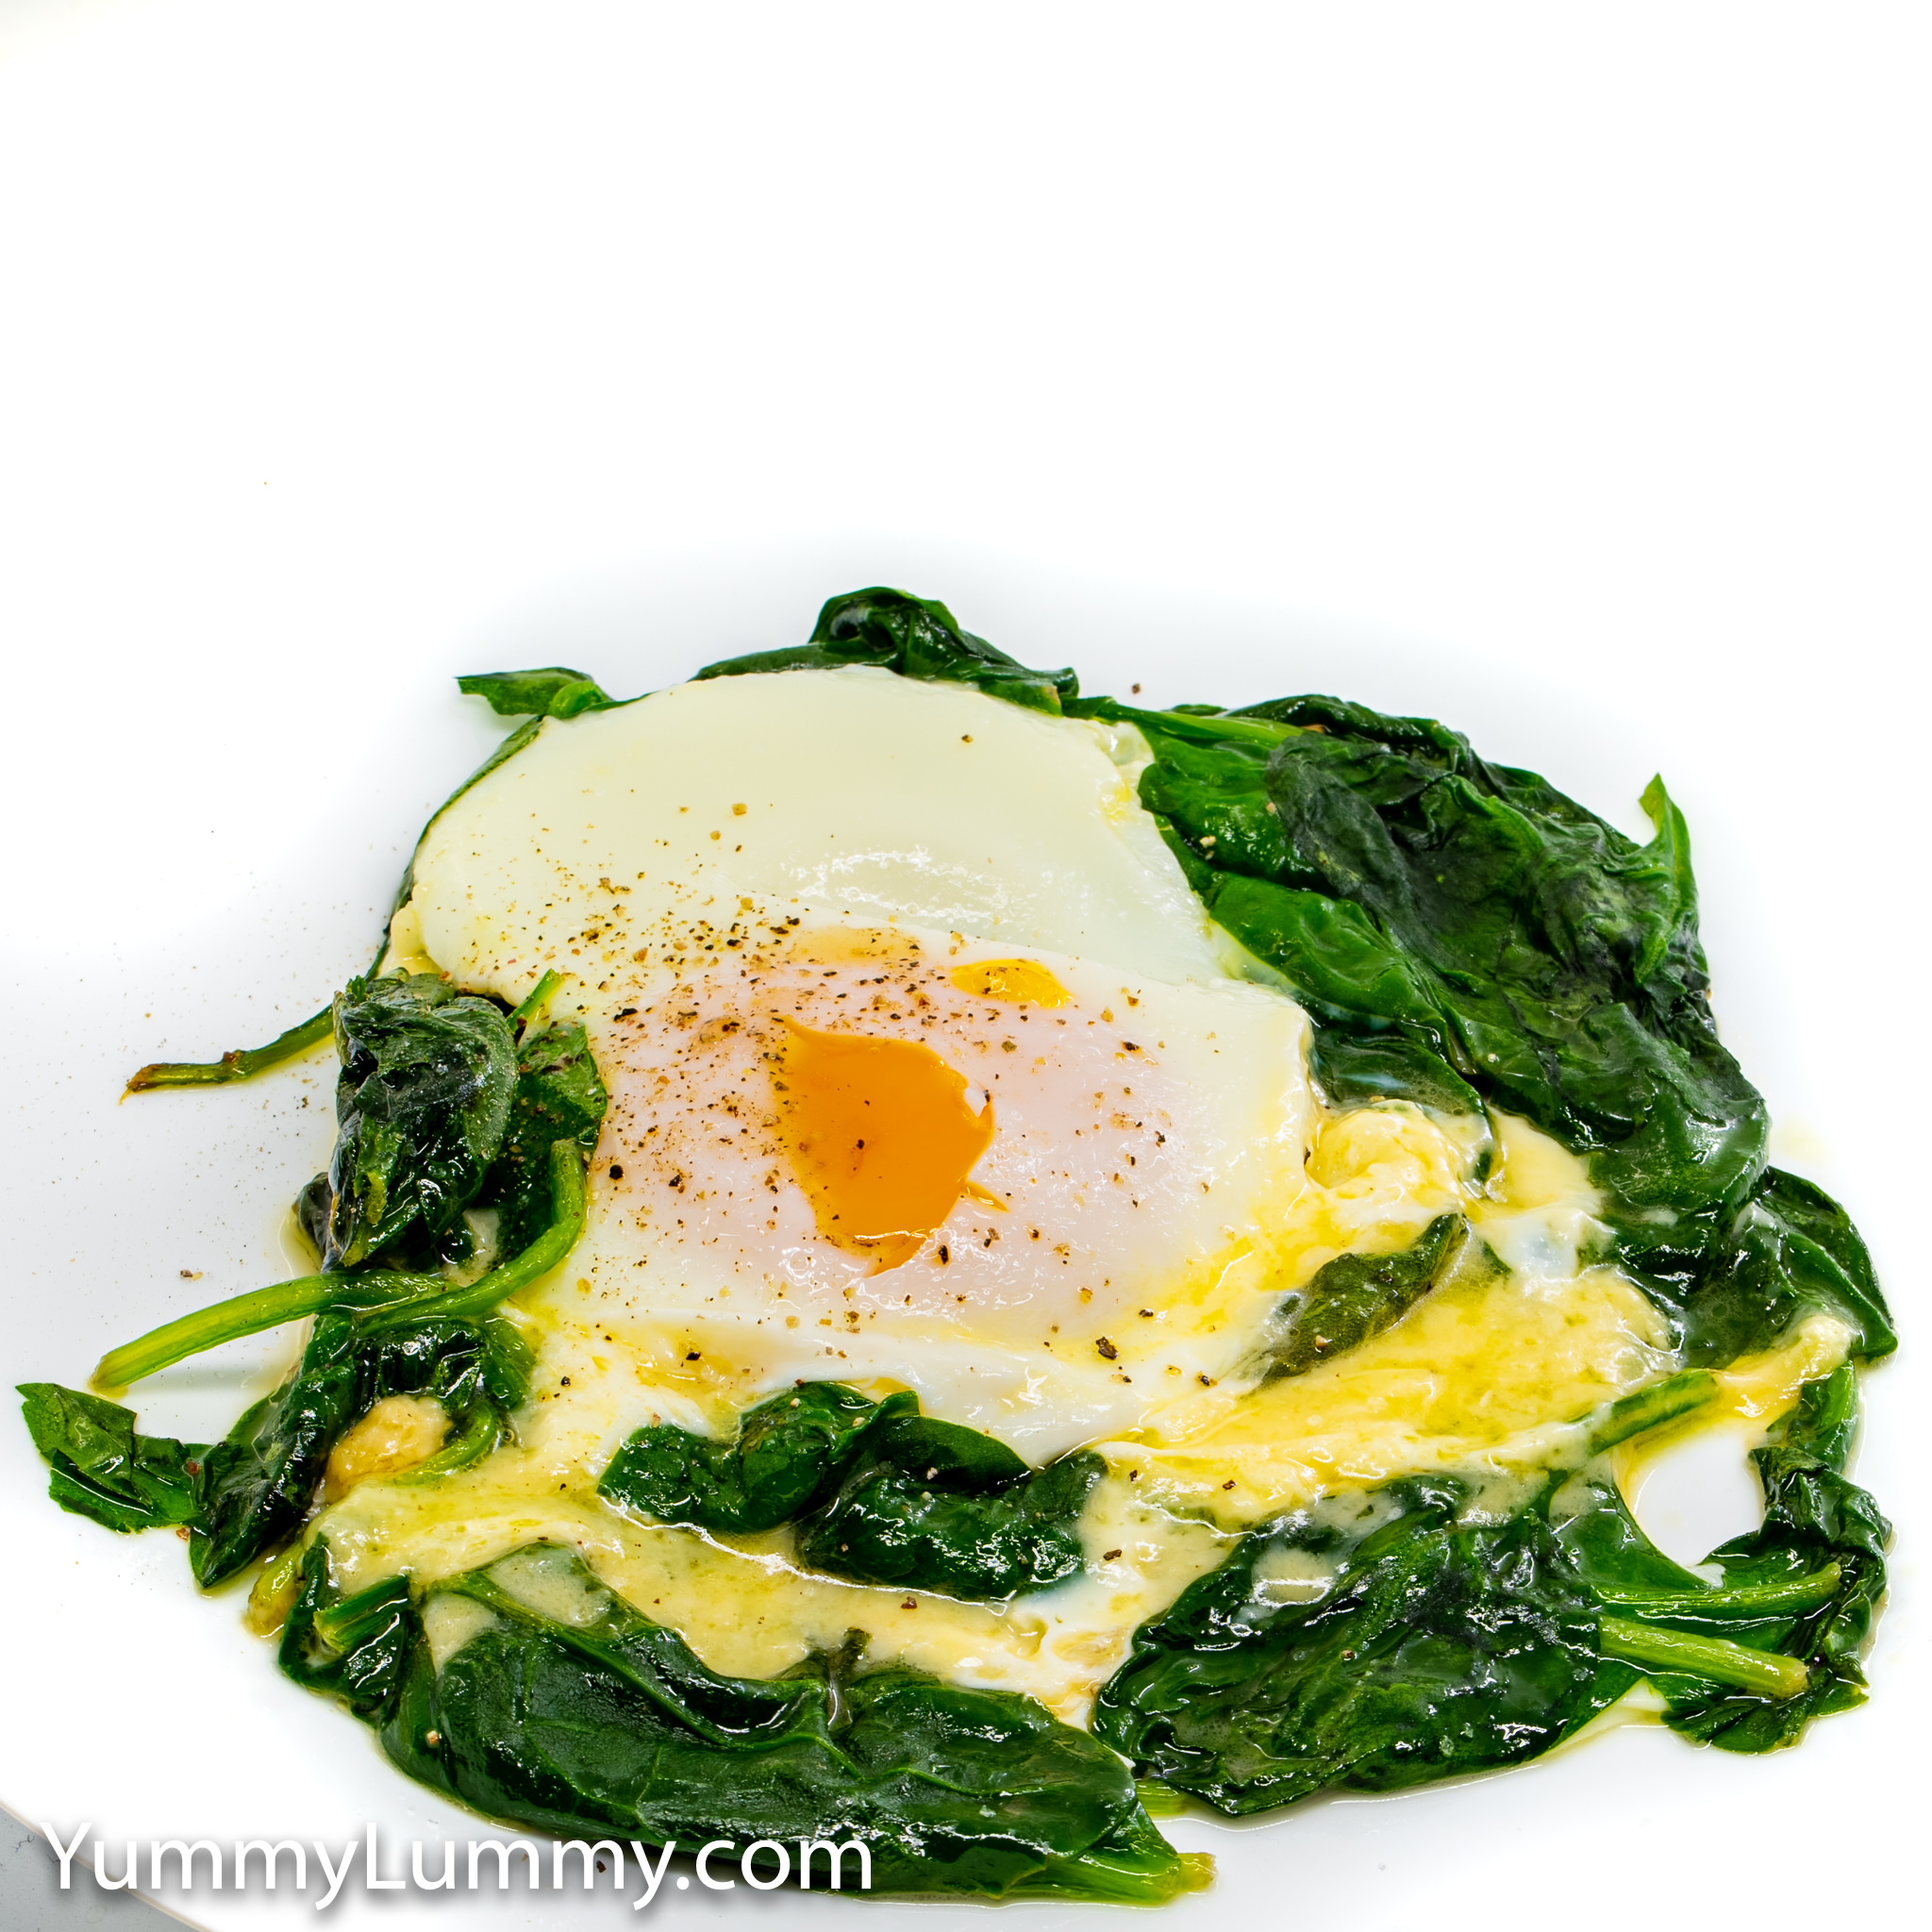 Photograph of Steamed egg, melted cheese, and wilted spinach. Gary Lum.